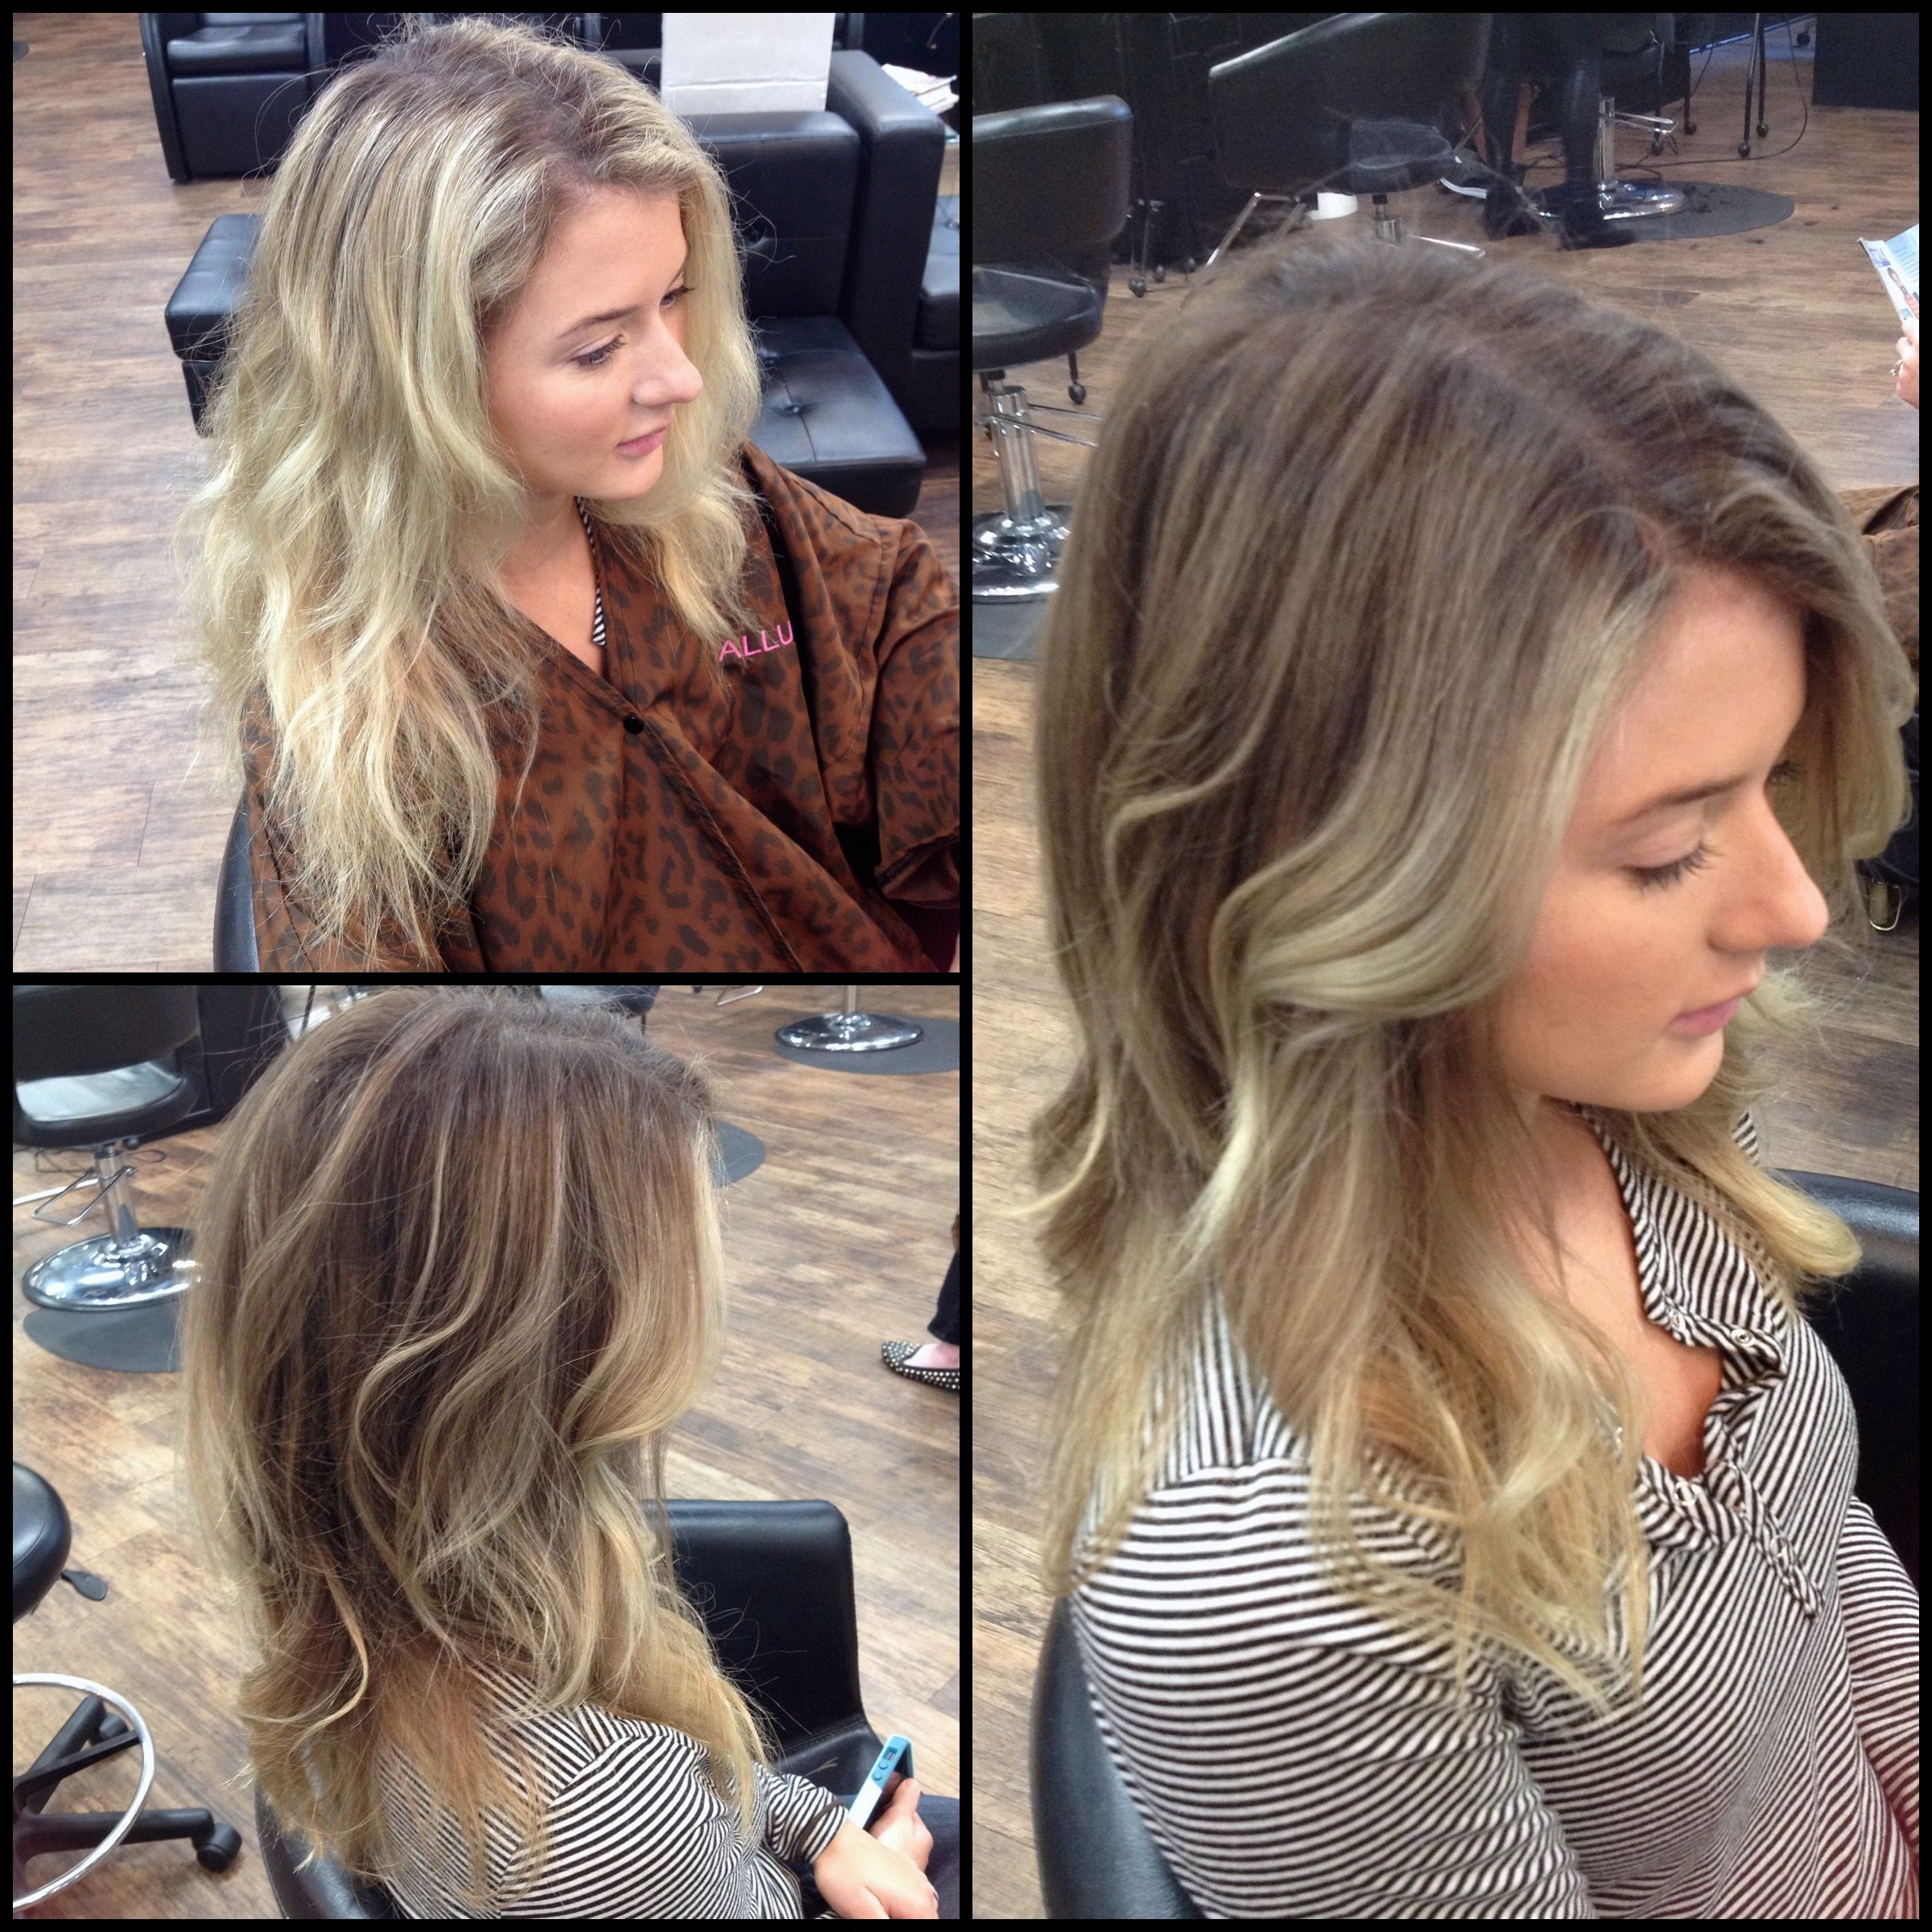 7fc6ab78e40b71f6f691092cb0683af5 - How To Get Dark Blonde Hair From Light Blonde